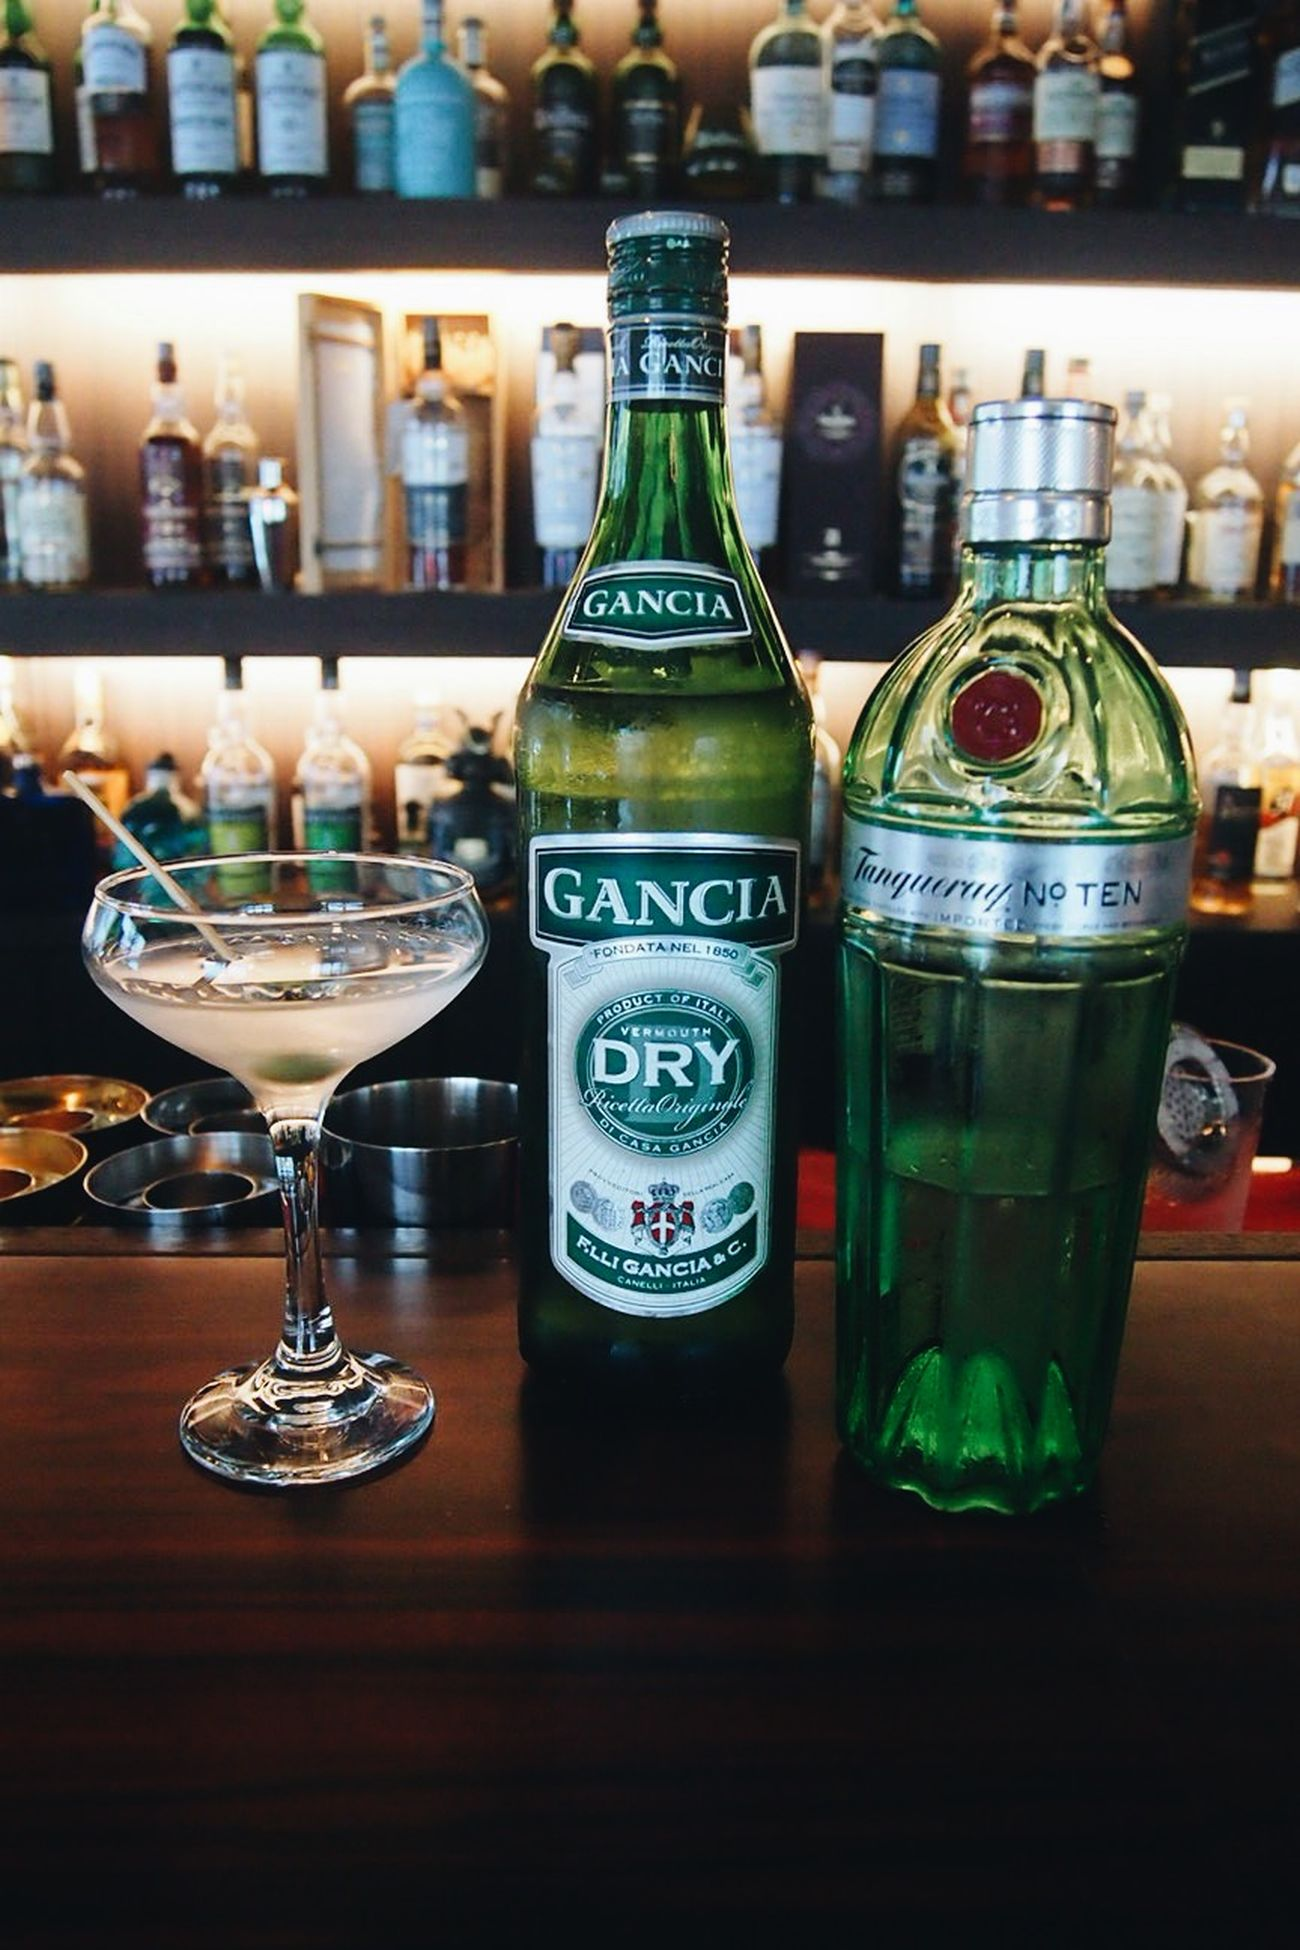 Dry Martini with Tanqueray 10 gin + Gancia vermouth Drinks GIN Korea Cocktail Cafe Louis Drymartini Tanqueray Gancia